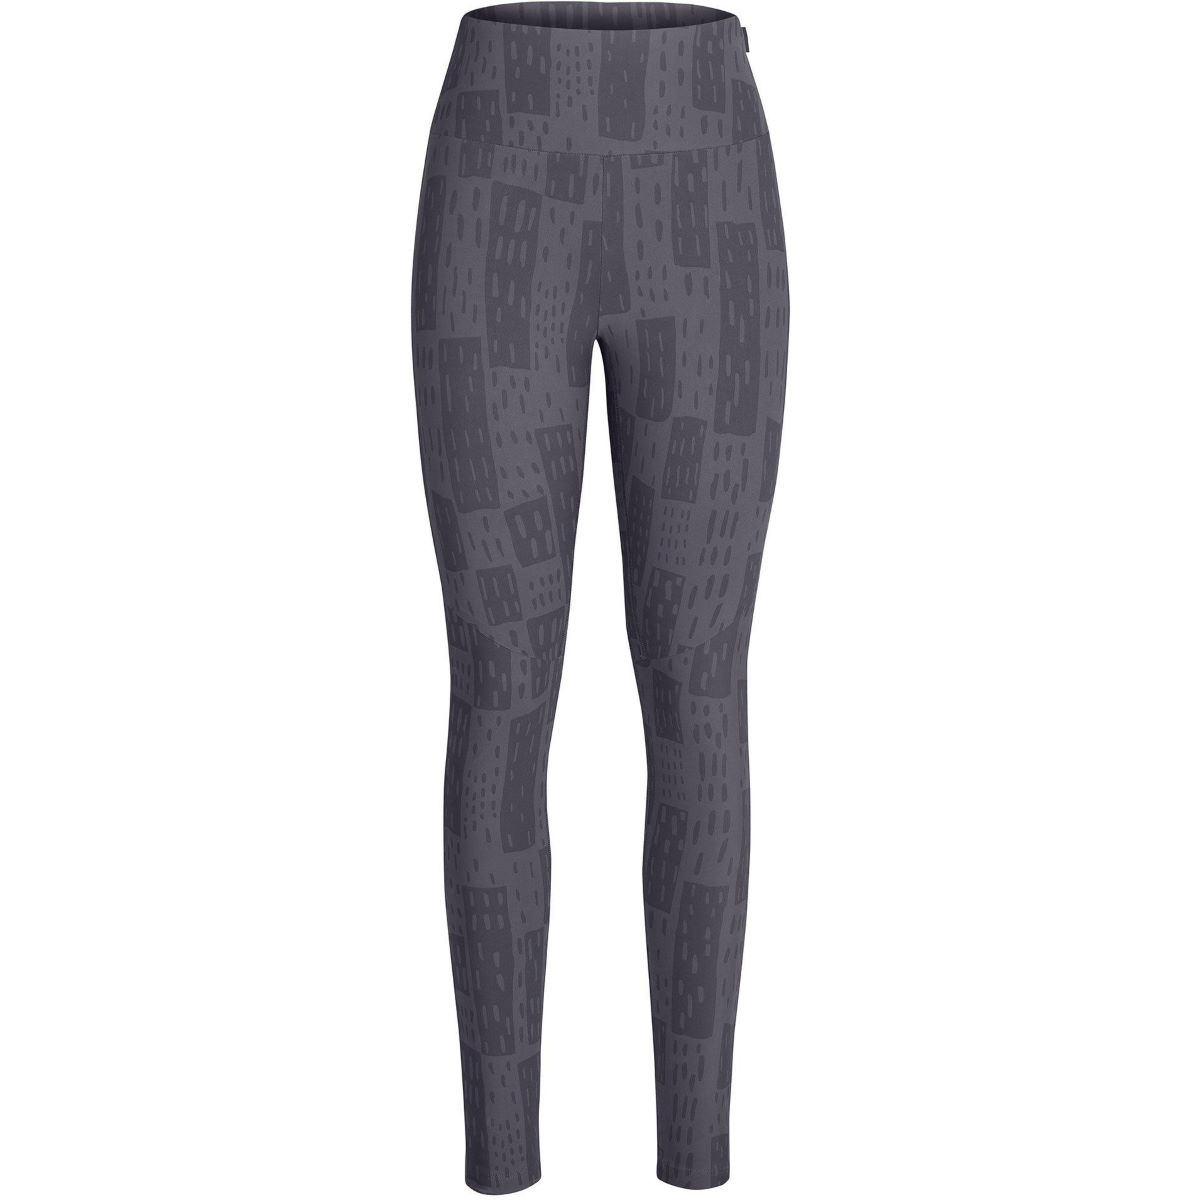 Image of Legging Femme Rapha - 2XS Gris | Cuissards longs